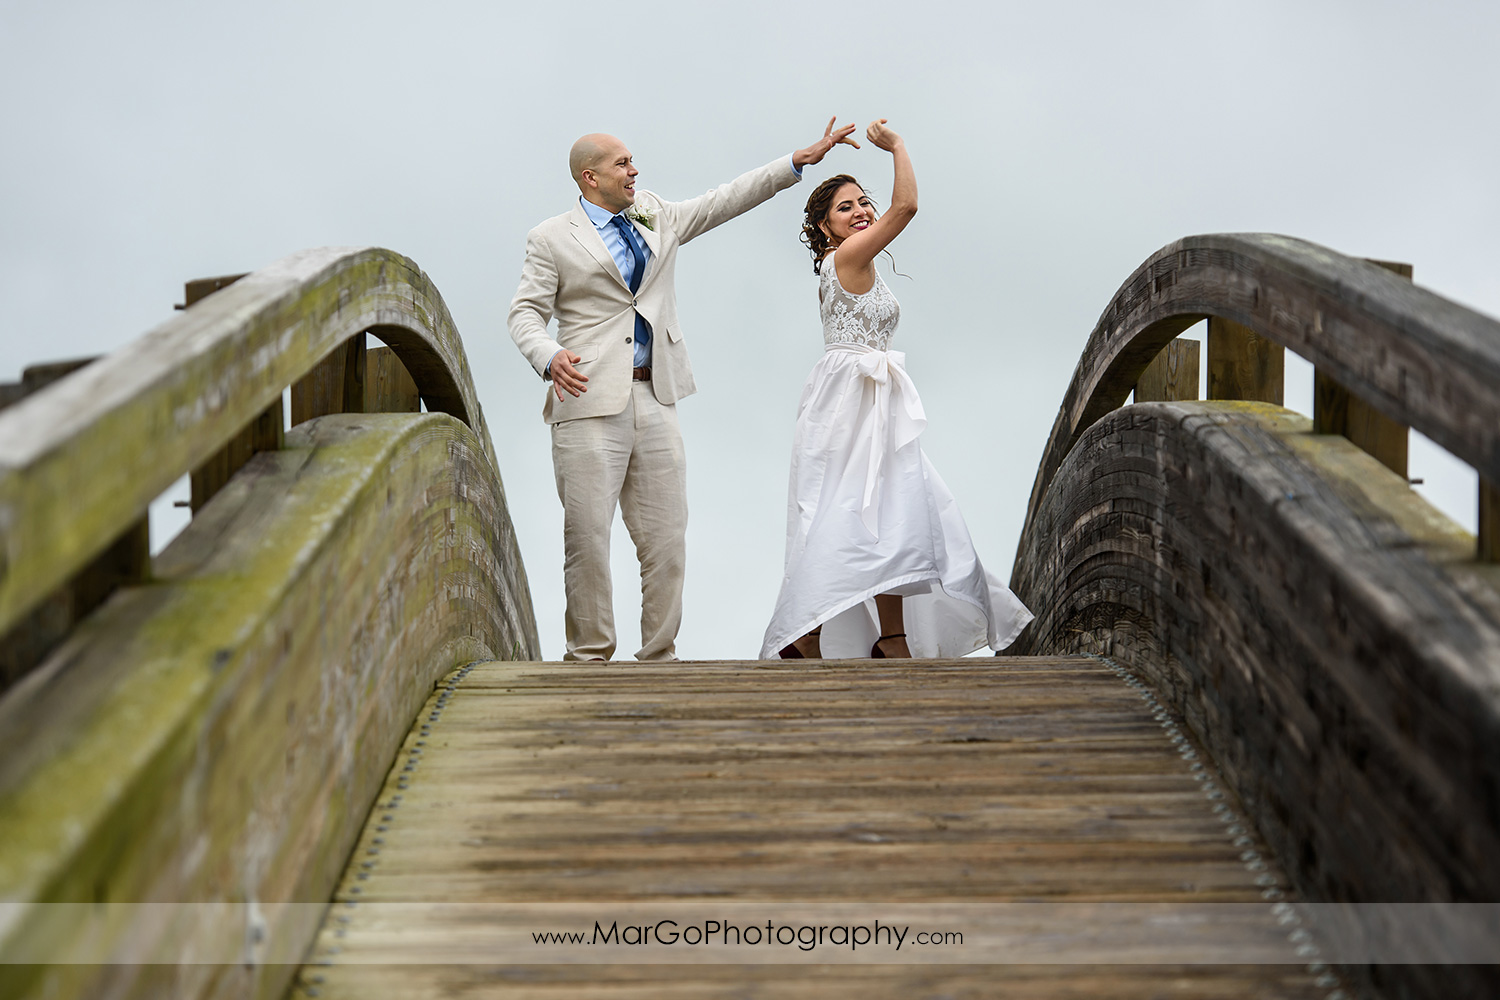 bride and groom dancing on the bridge at Martinez Regional Shoreline